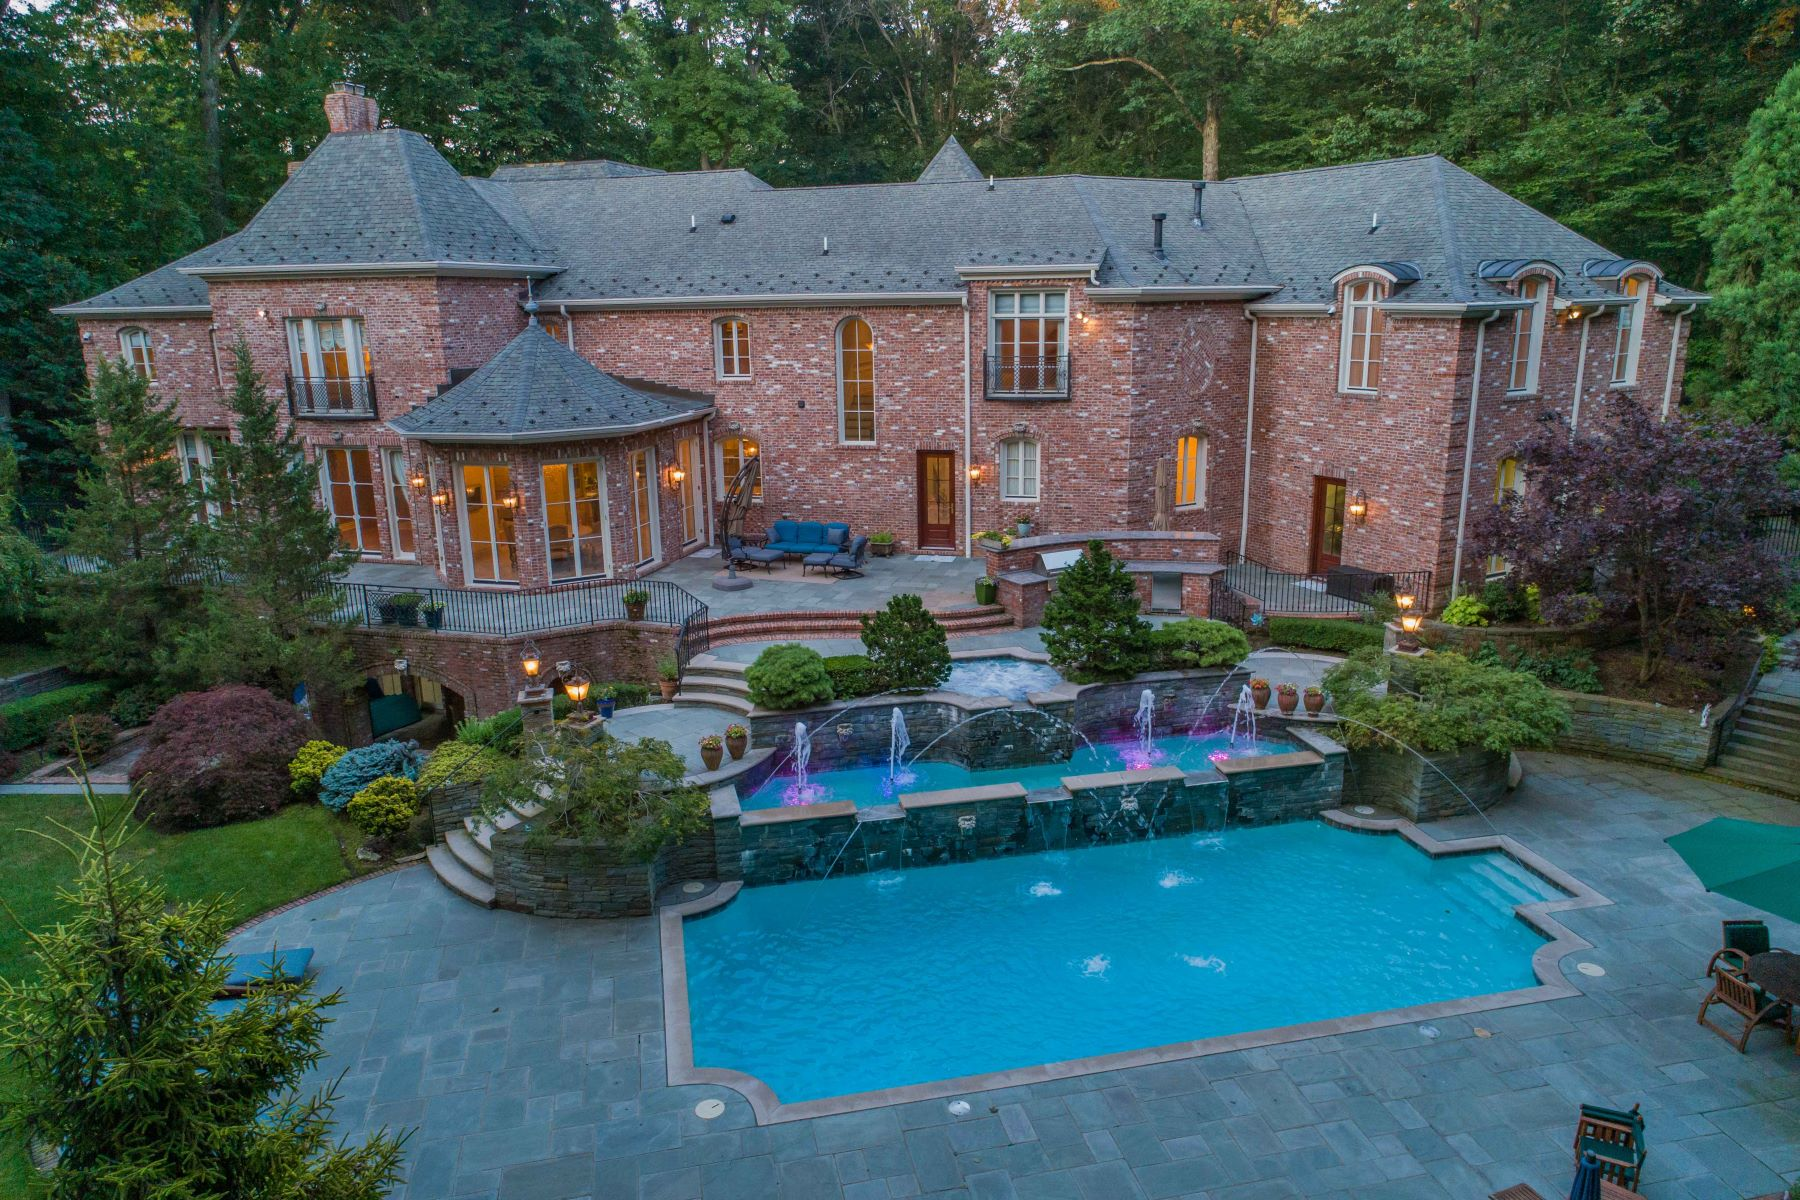 Single Family Homes for Active at ONE OF KIND MASTERPIECE 47 Fox Hedge Rd. Saddle River, New Jersey 07458 United States